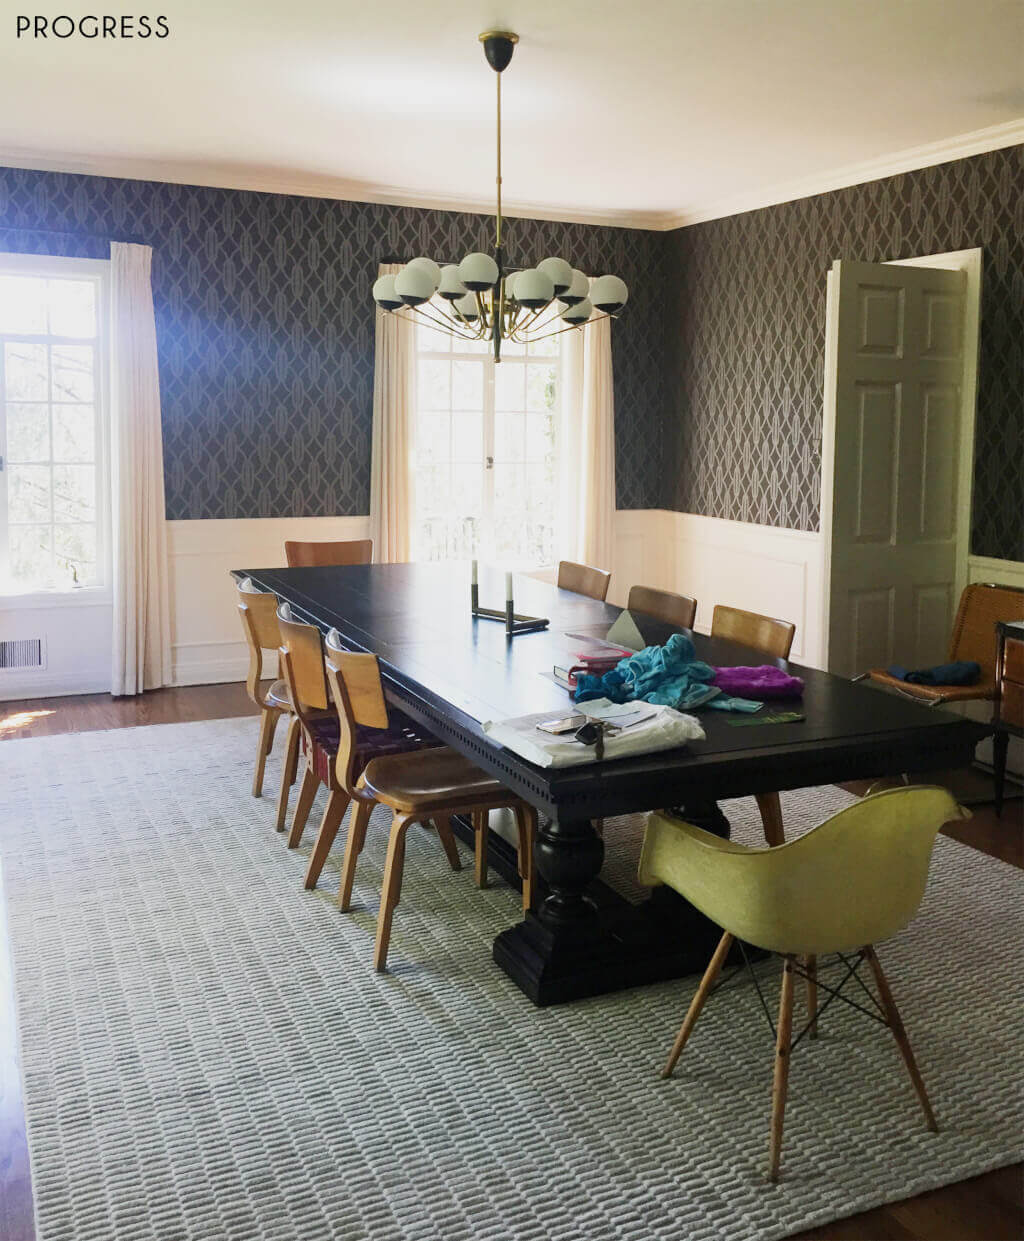 06_Ginny_Macdonald_Full-Design_Traditional_Dining_room_progress